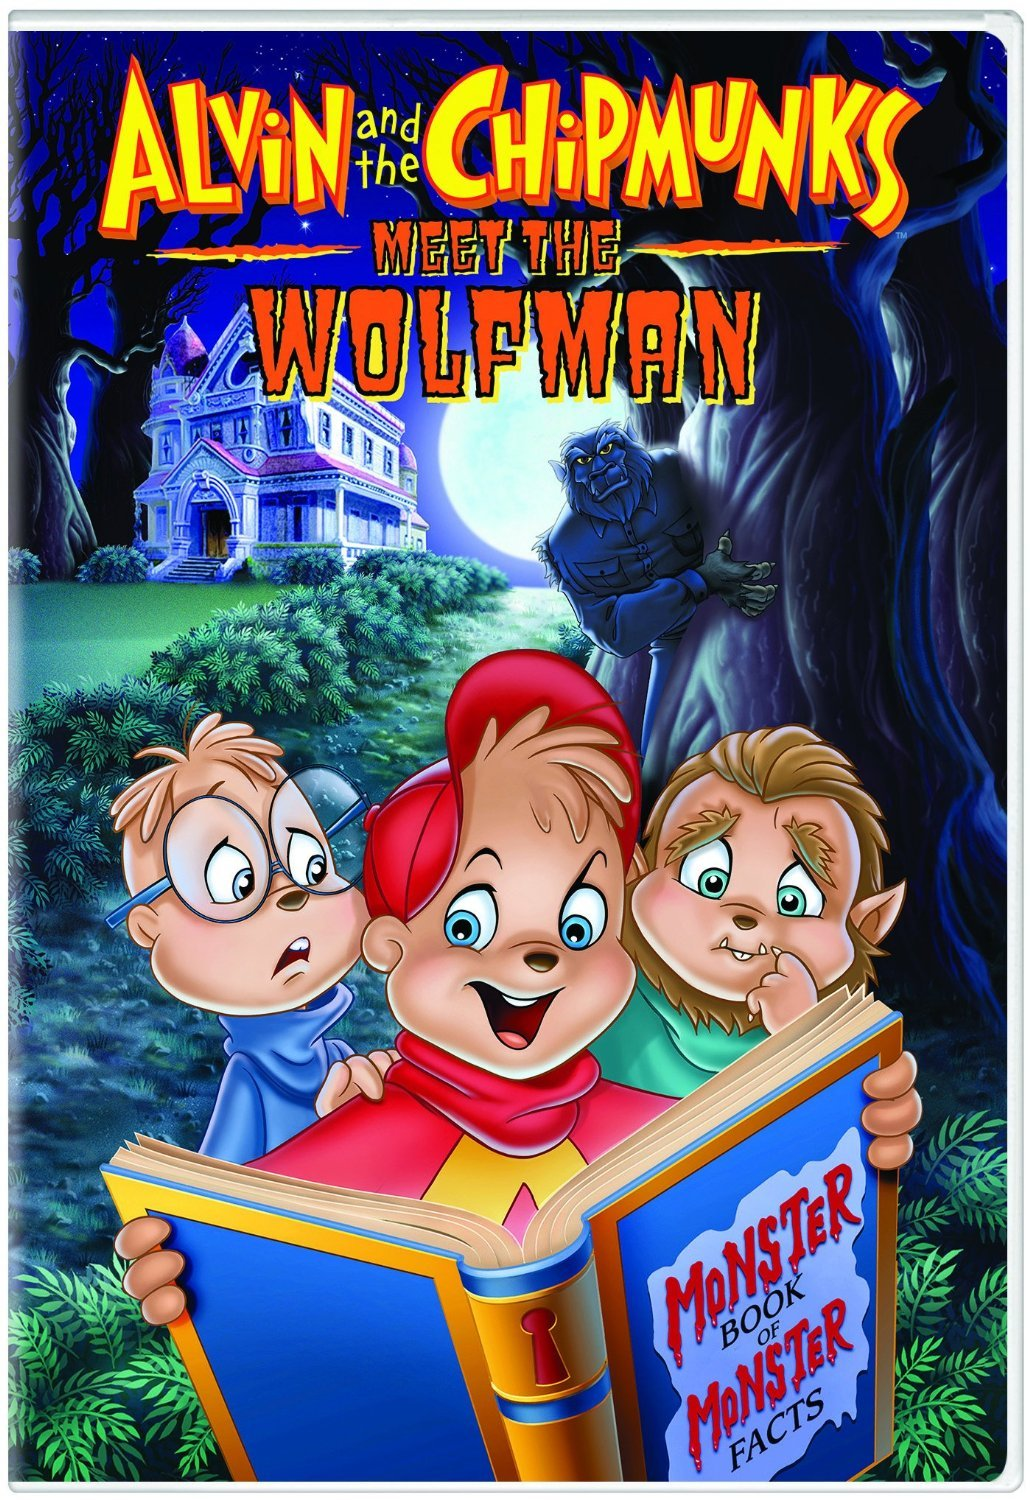 alvin and the chipmunks meet wolfman part 8